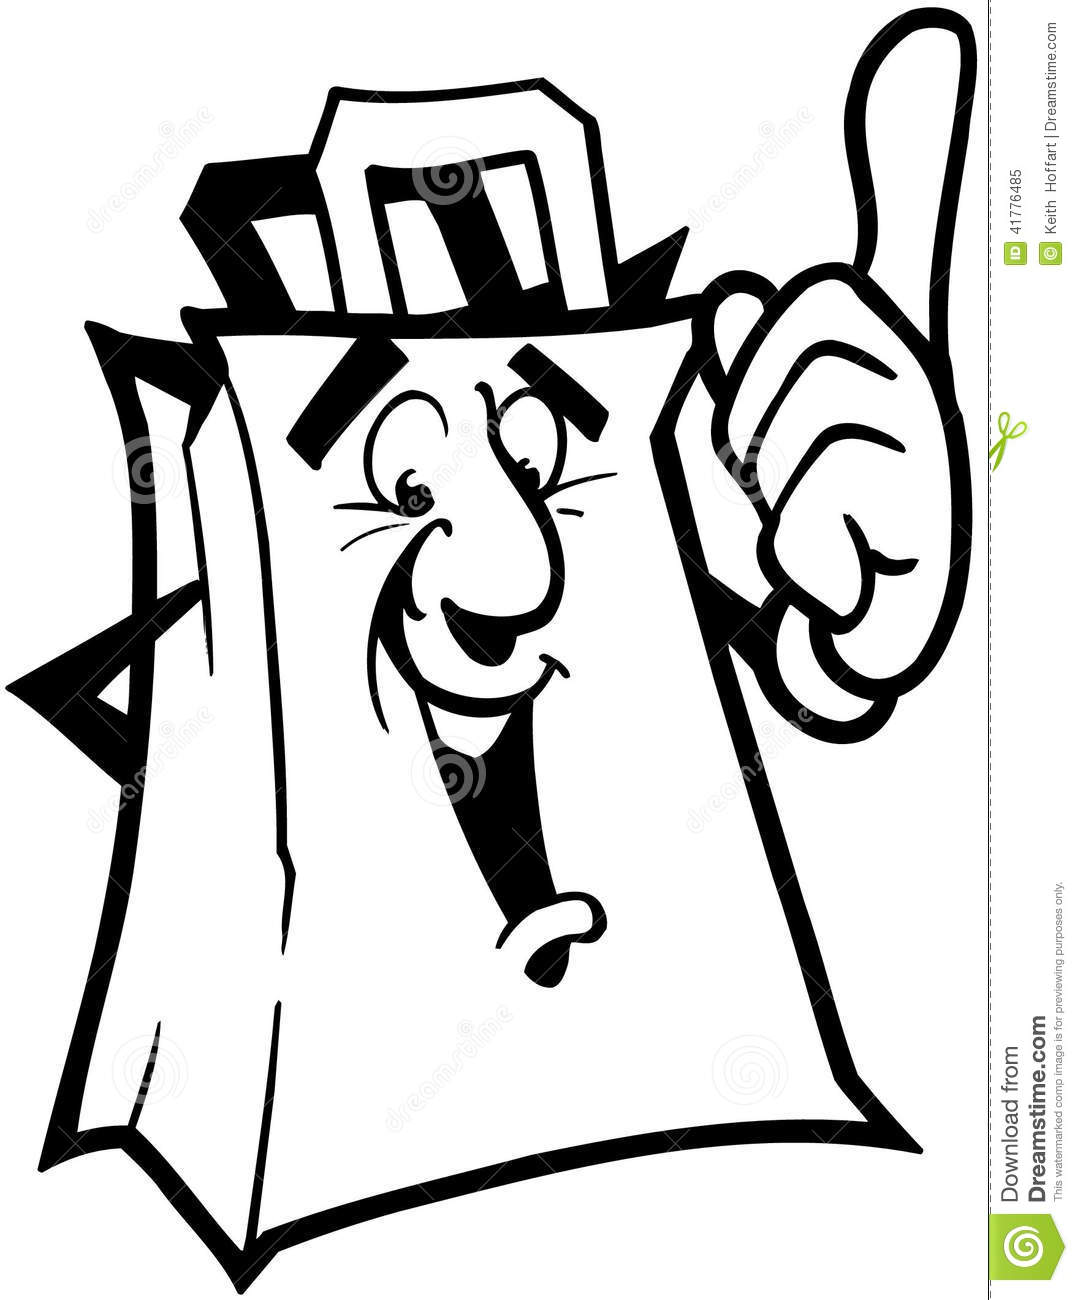 Plastic Grocery Bags Clip Art Grocery Bag Cartoon Vector